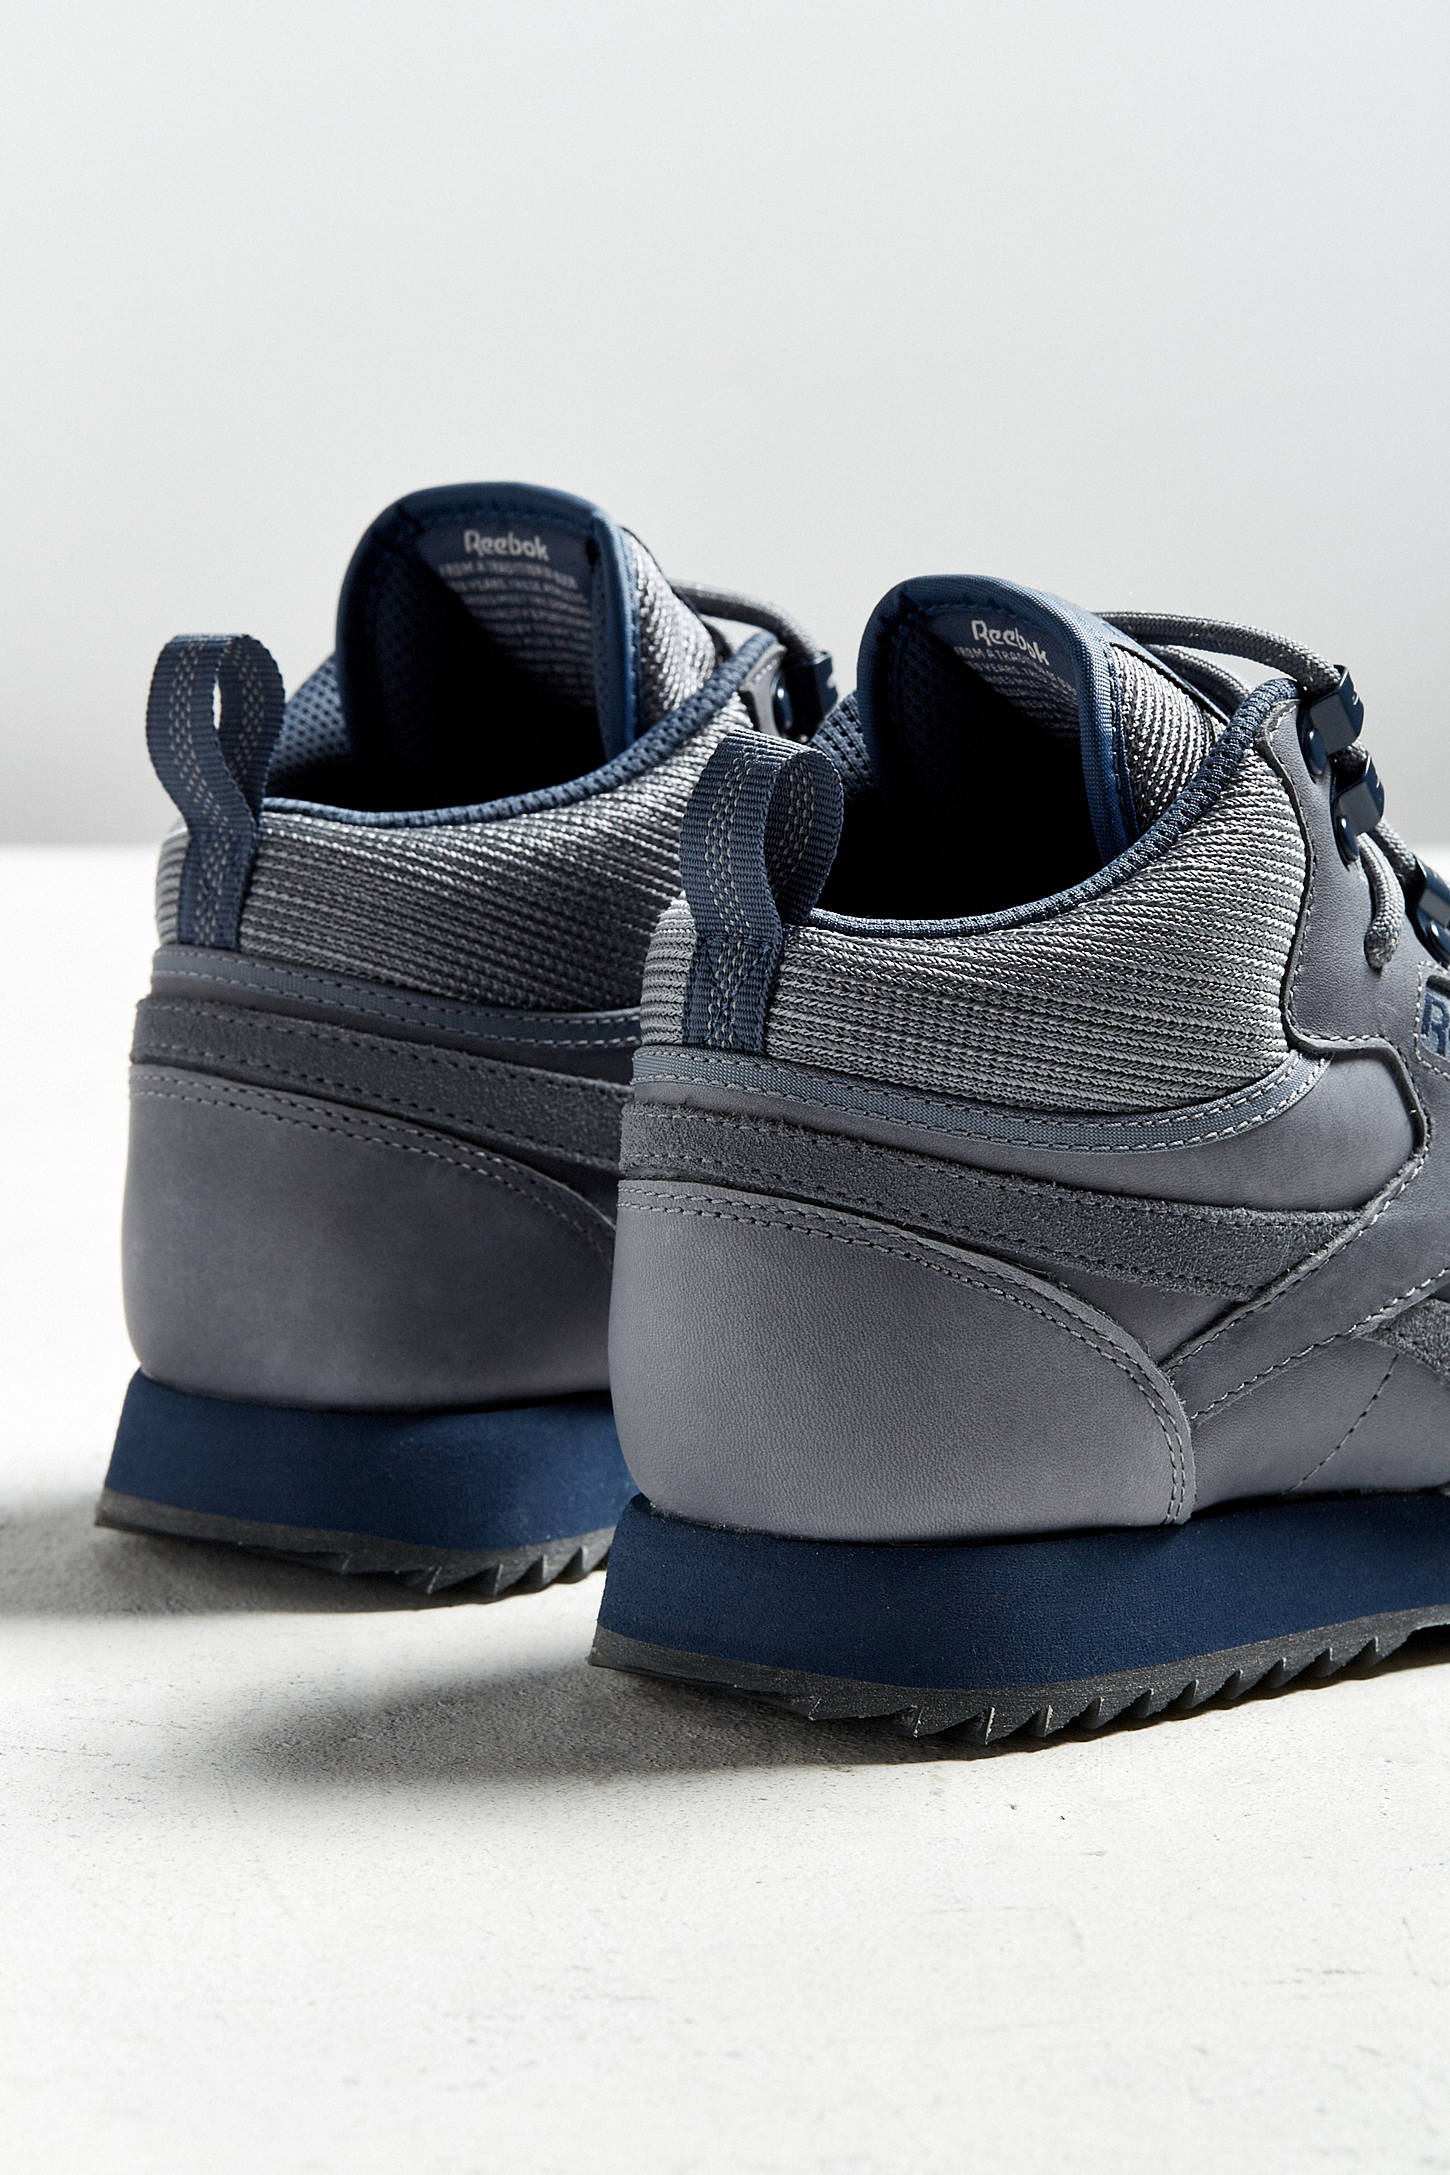 reebok classic leather mid thinsulate insulation